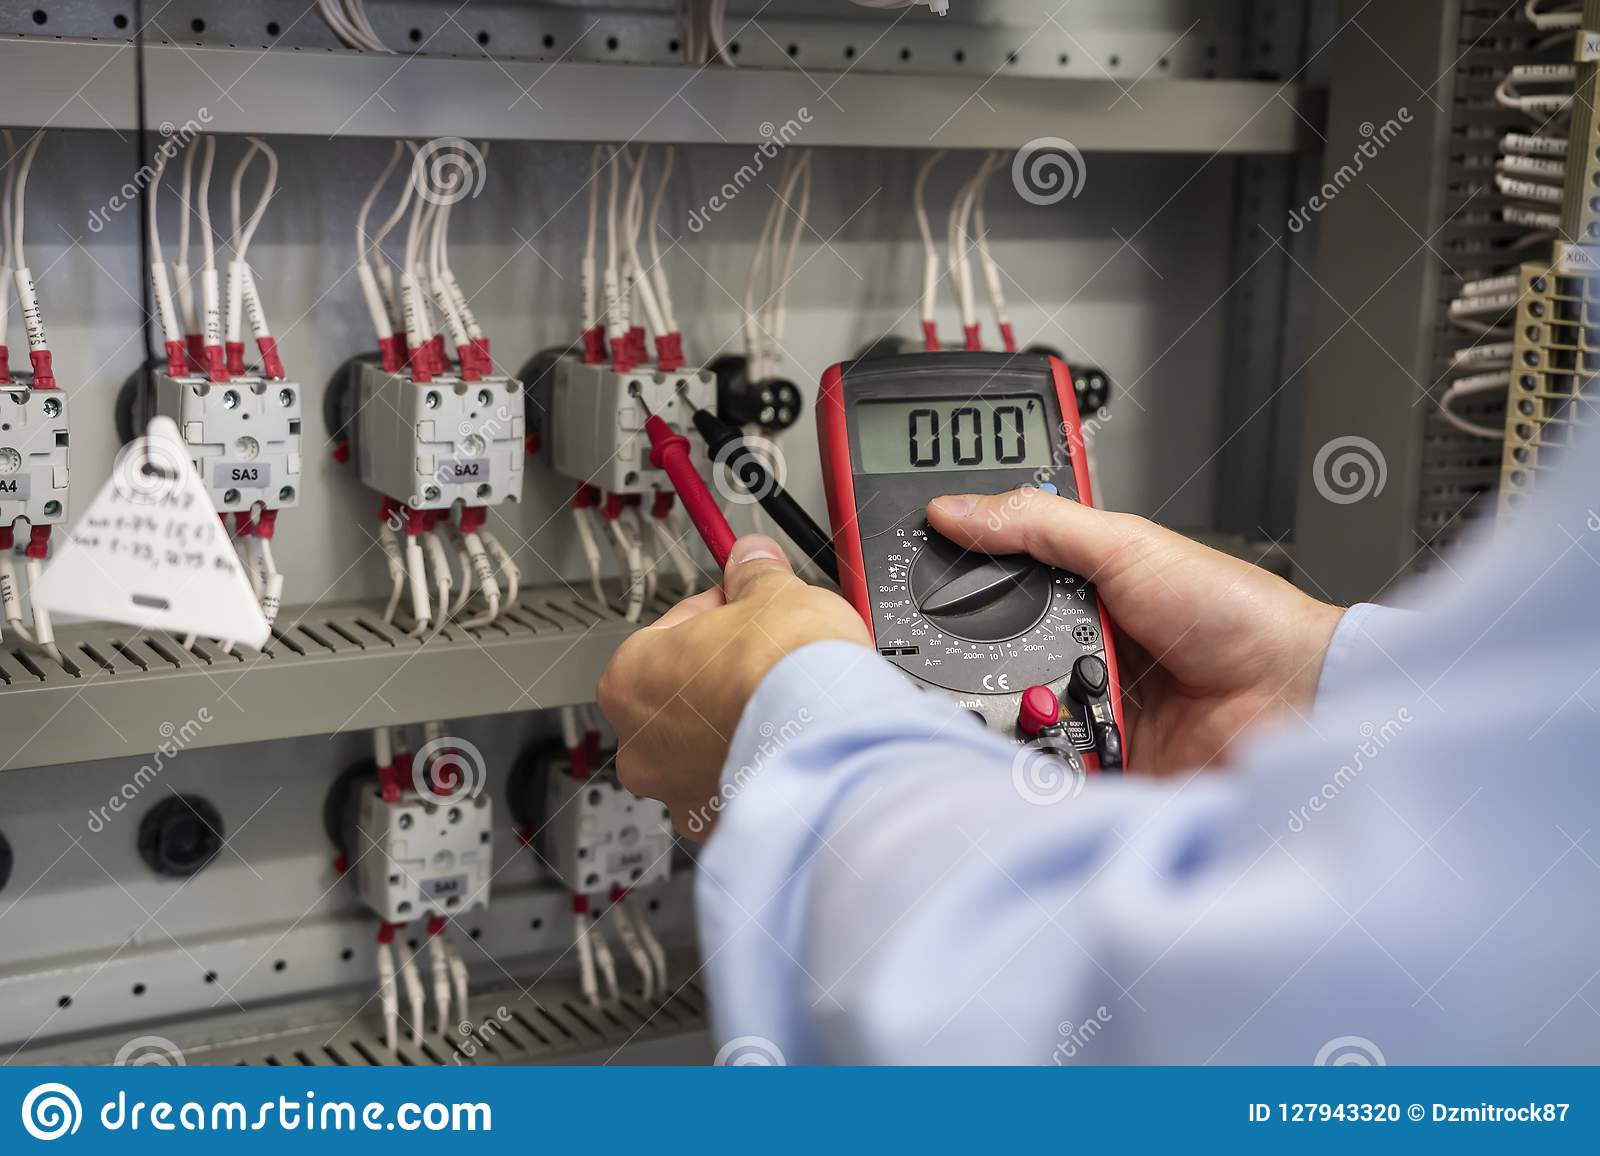 Multimeter in hands of electrician closeup. Service works in electrical box.  Maintenance of electric